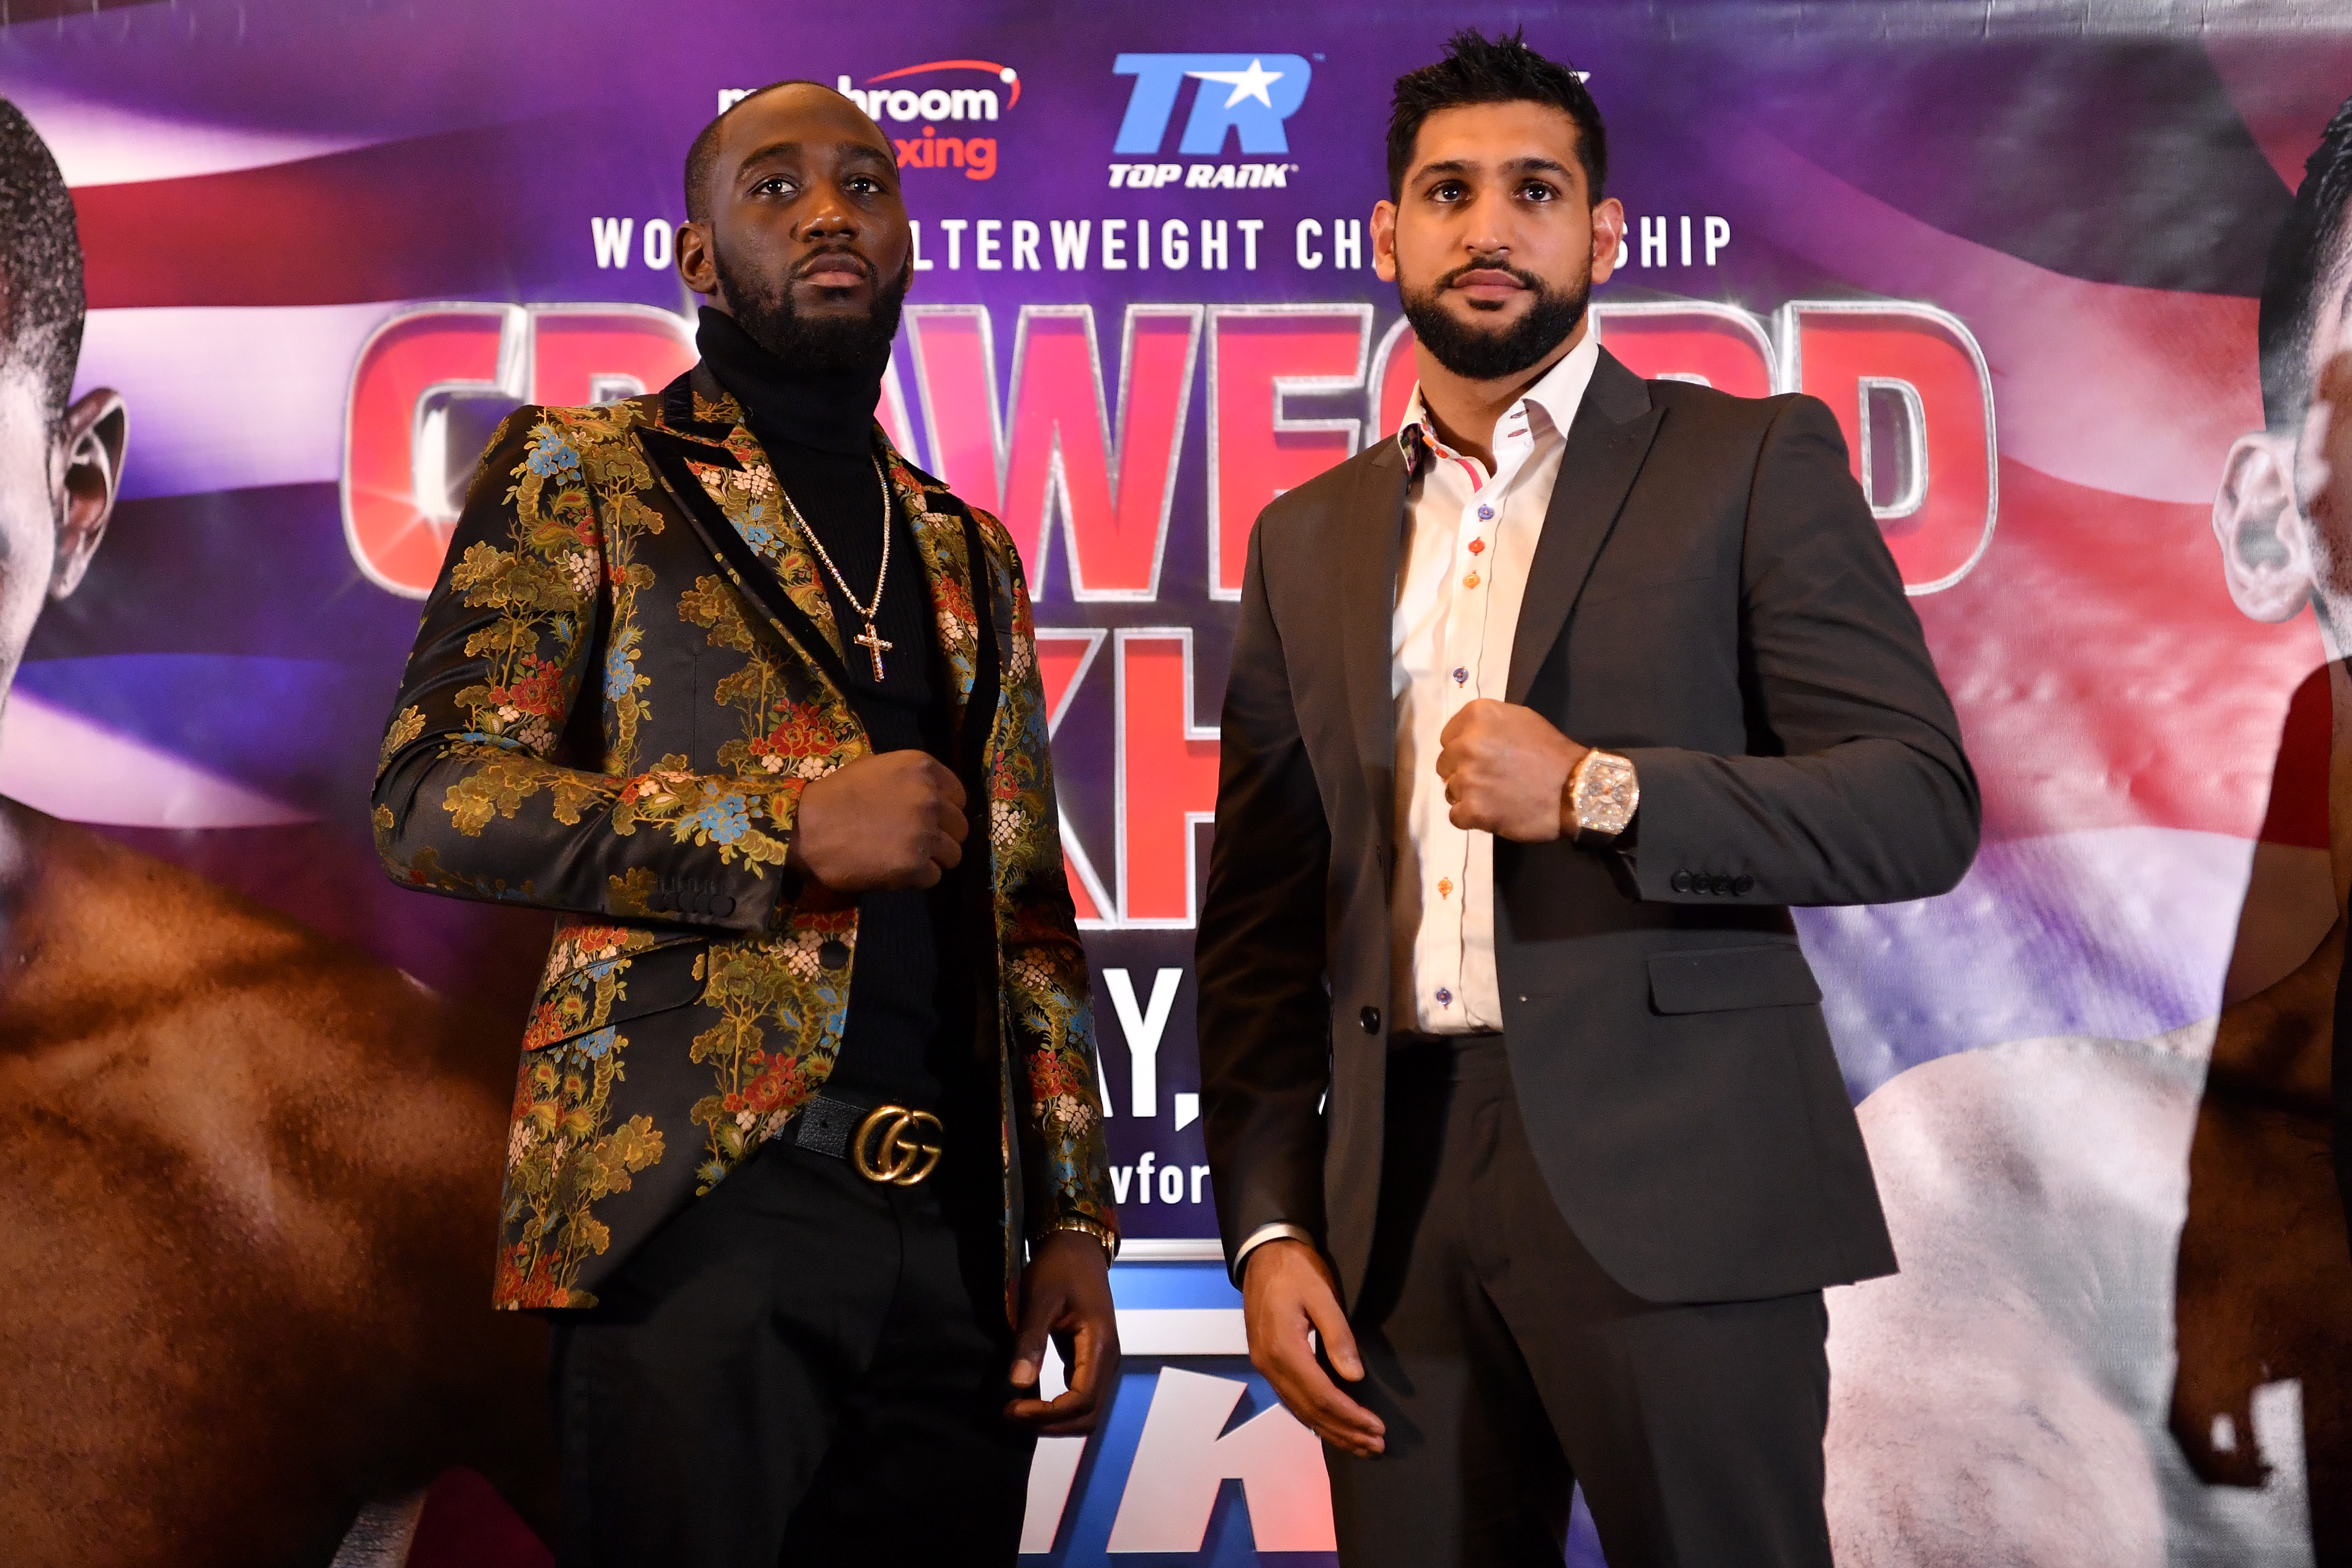 Crawford vs. Khan 2019 live stream: Start time, how to watch online, and fight card